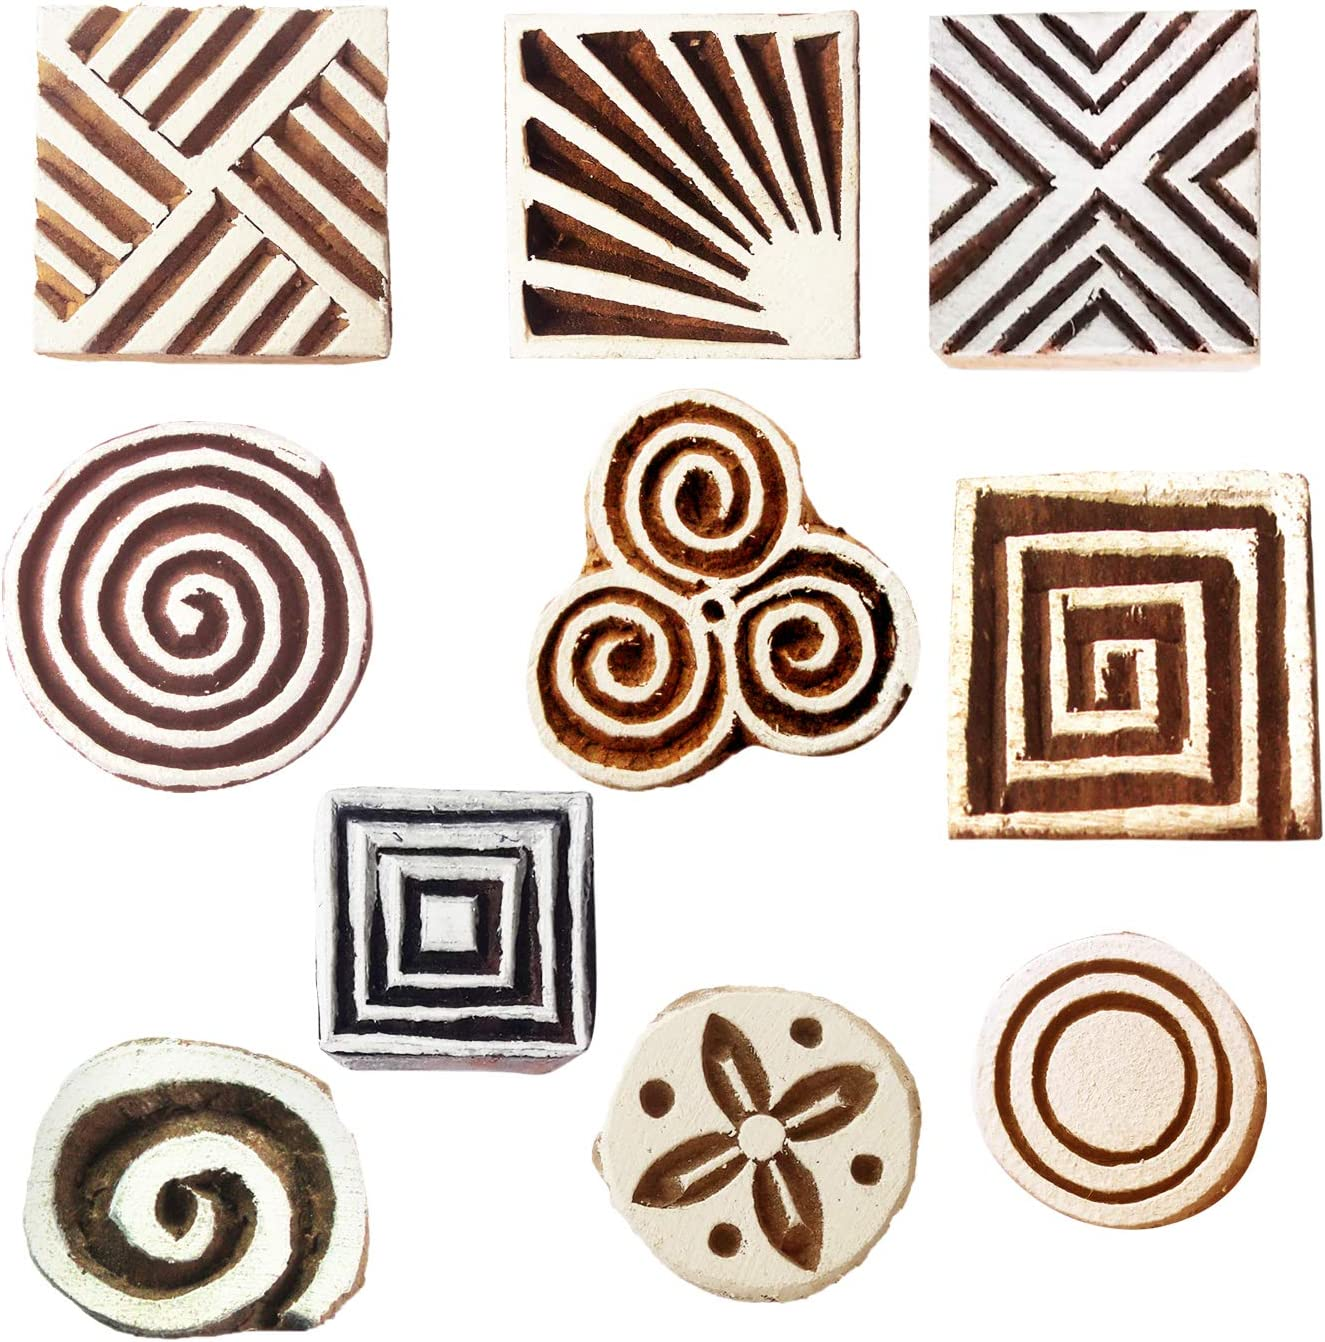 Clay Pottery Textile Printing Set of 10 Temporary Tattoos Royal Kraft Blocks for Block Printing Stamps Wooden Printing Block for Saree Border